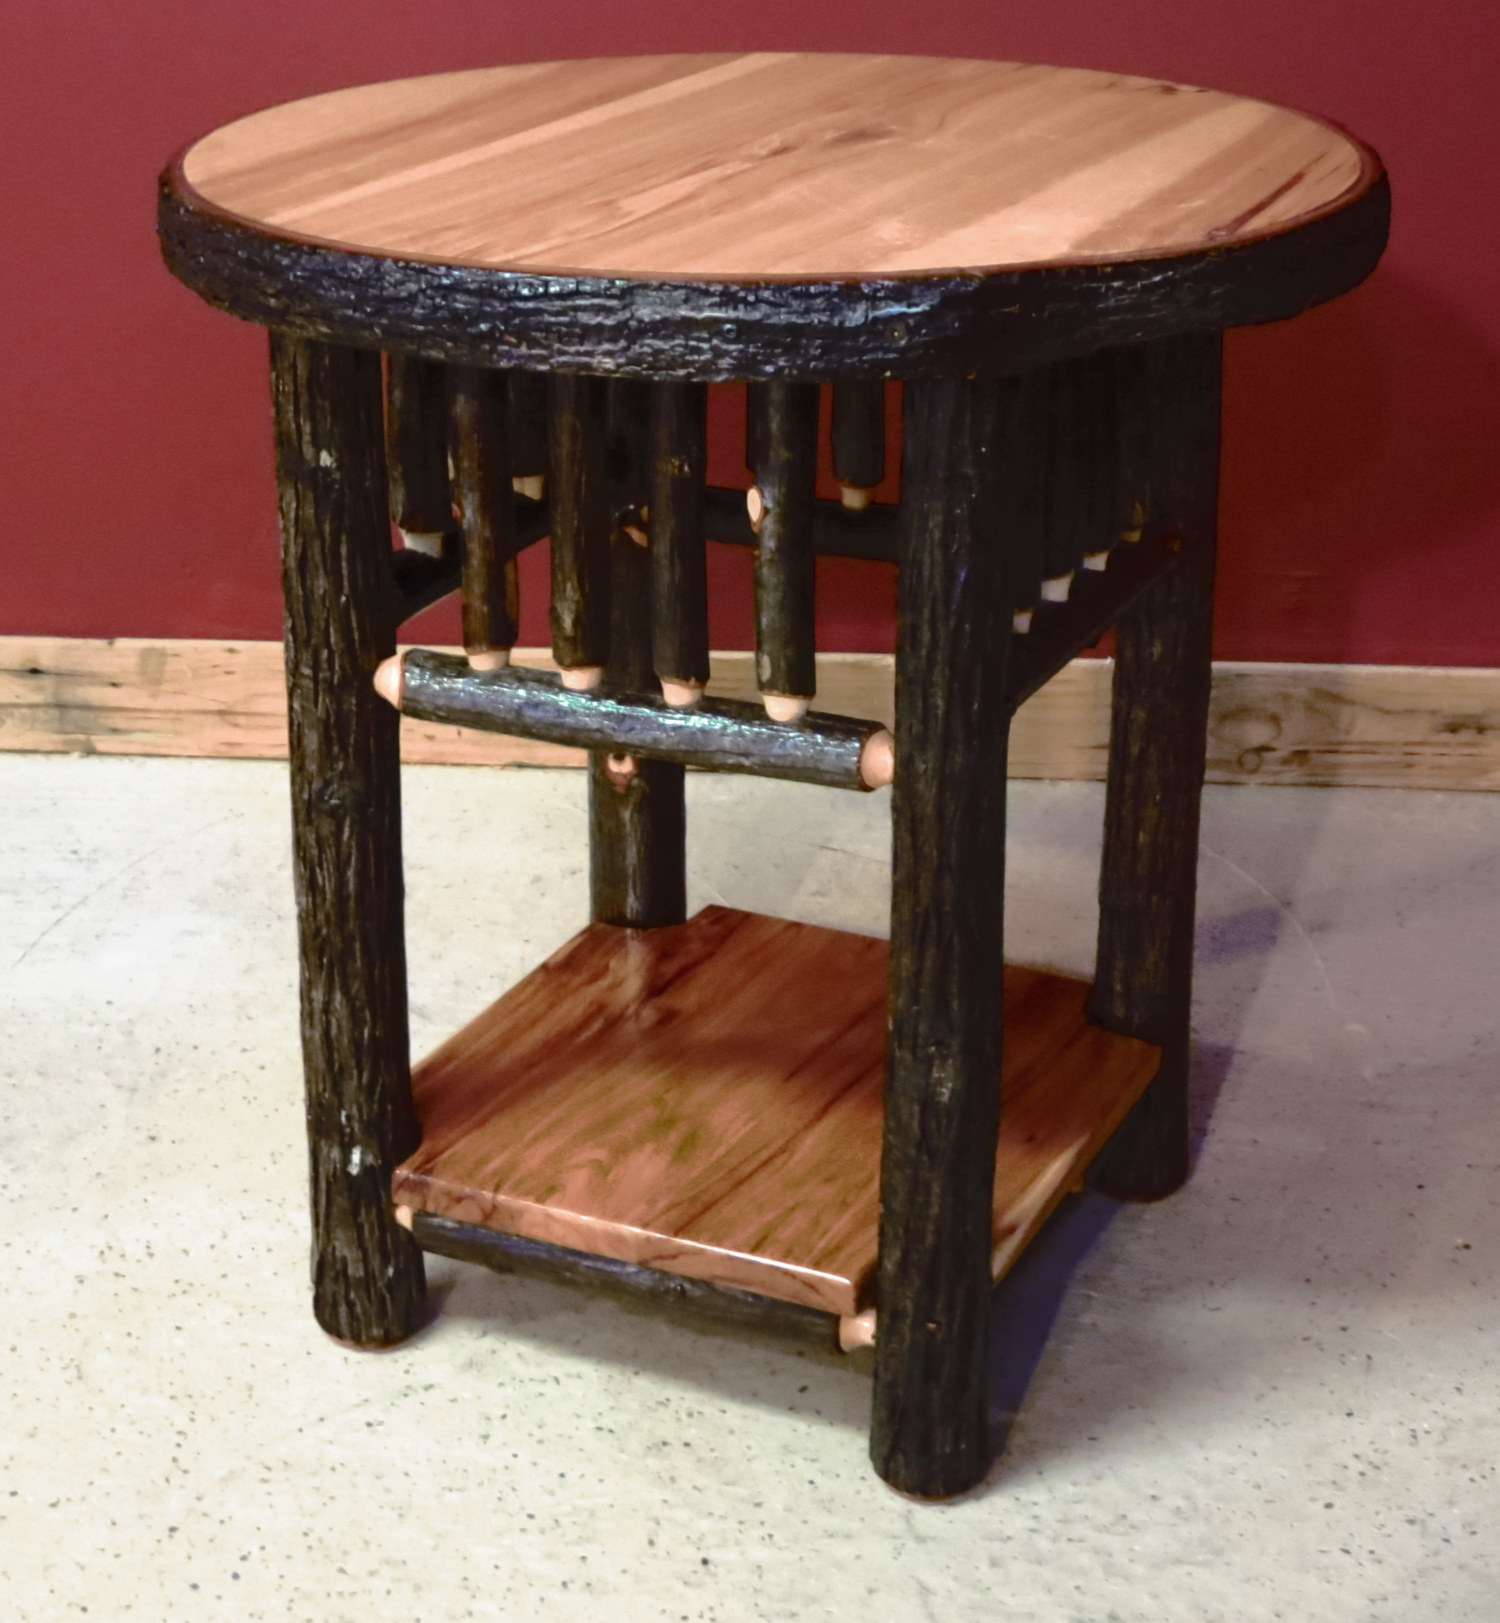 round hickory end table with solid shelf barn wood furniture log tables rustic barnwood and vienna woodworks west elm simple frame glass cover amish wooden chairs display small